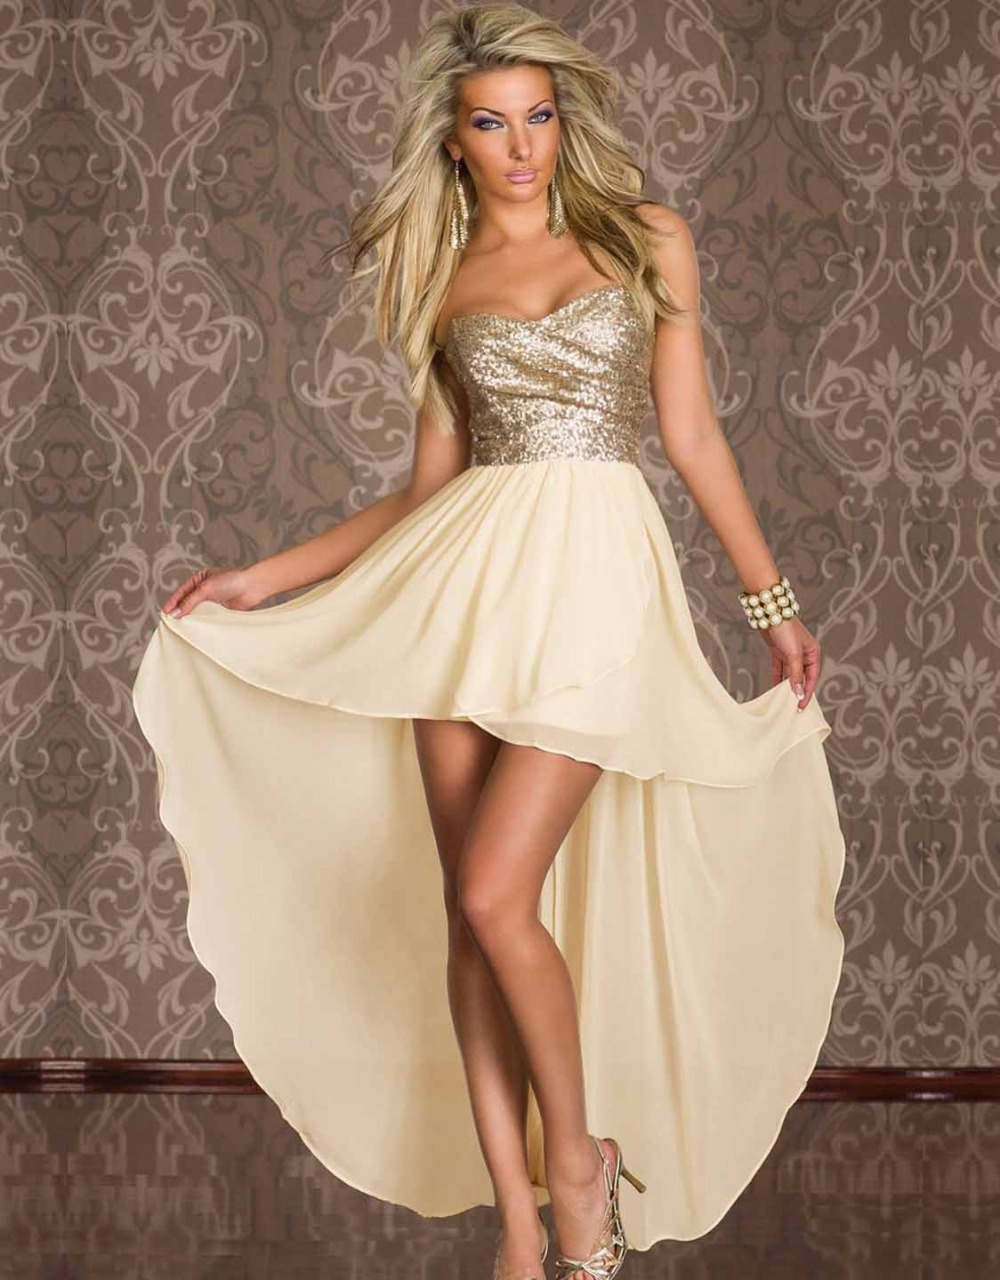 Aliexpress.com : Buy Sequin Strapless Cocktail Beige Dress from ...